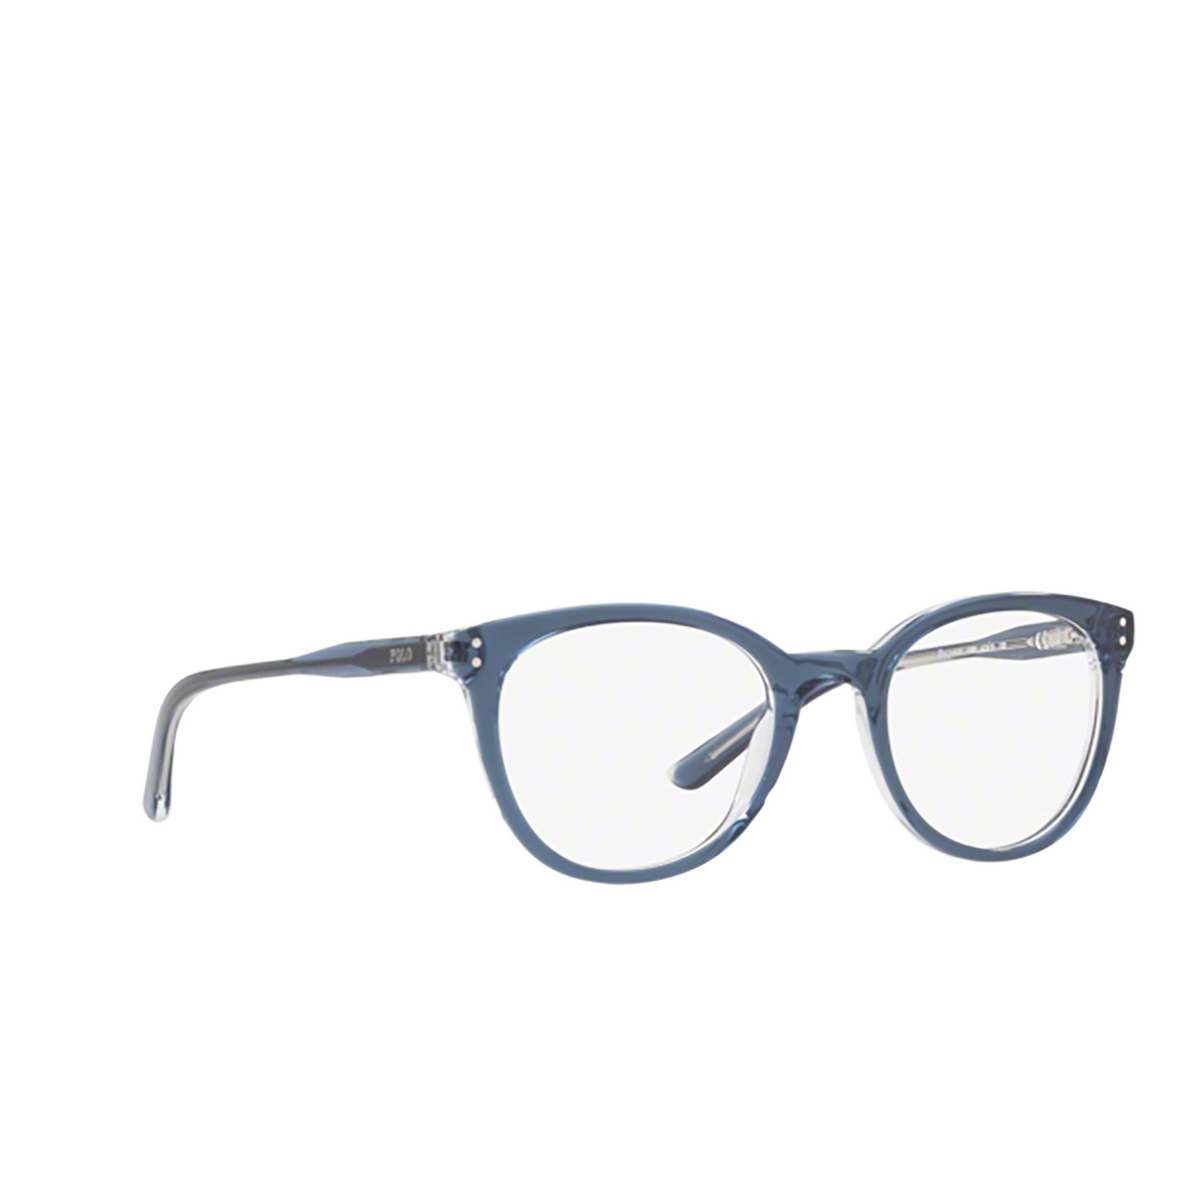 Polo Ralph Lauren® Round Eyeglasses: PP8529 color Shiny Navy Crystal 1666 - three-quarters view.